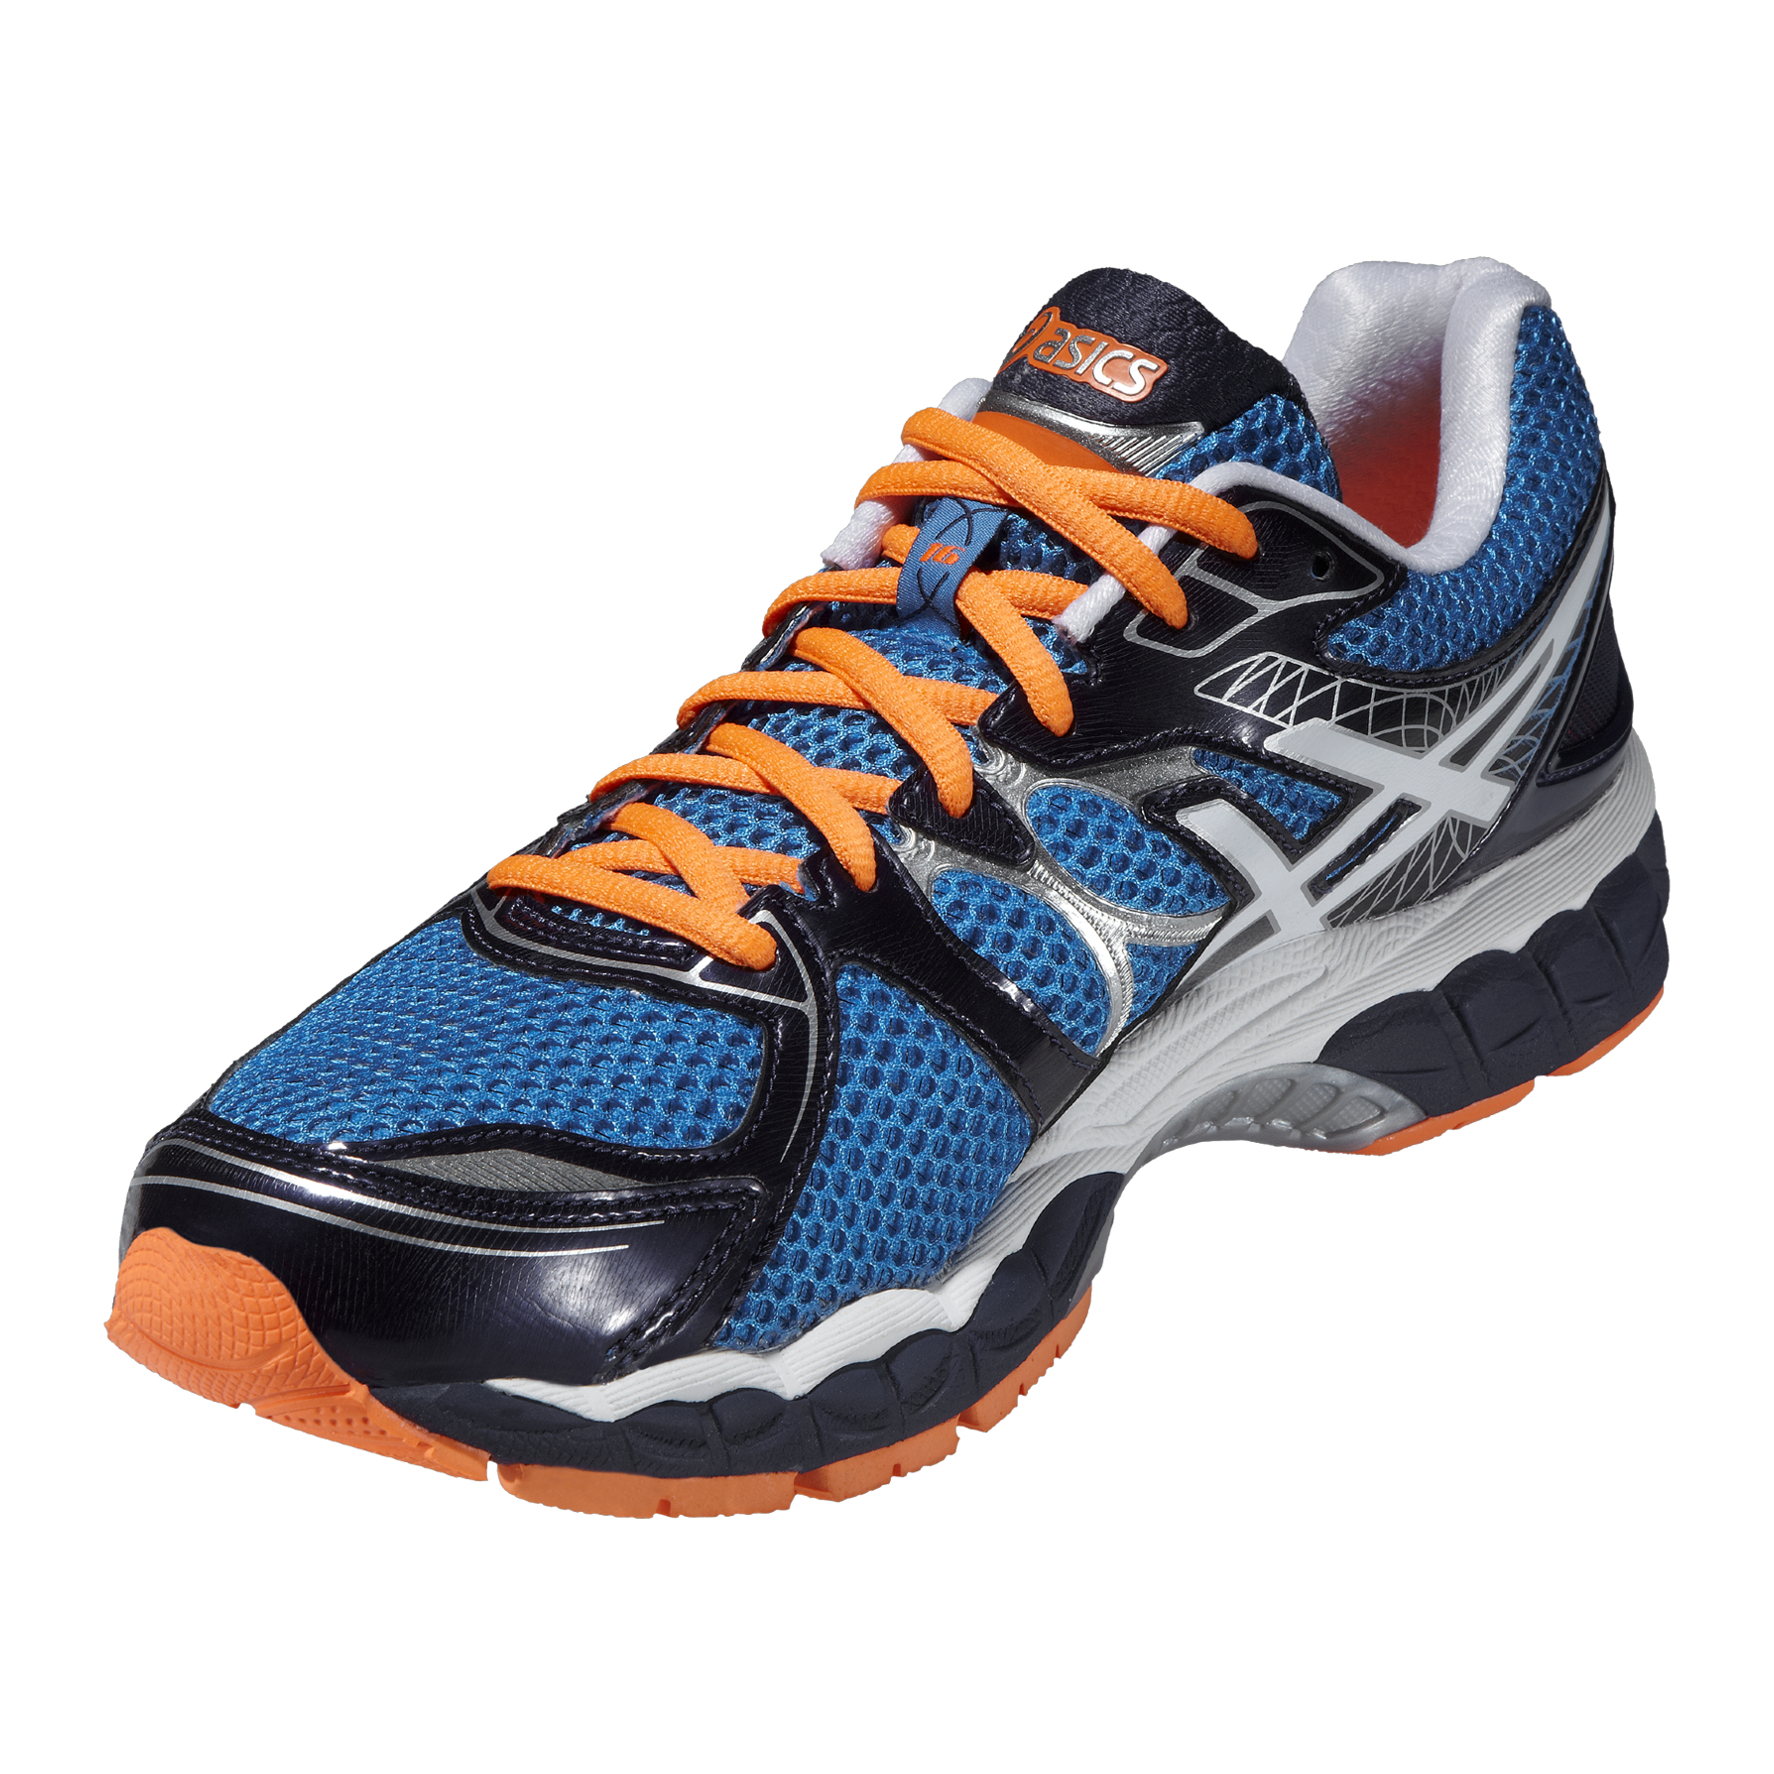 asics chaussures running homme gel nimbus 16 m bleu. Black Bedroom Furniture Sets. Home Design Ideas